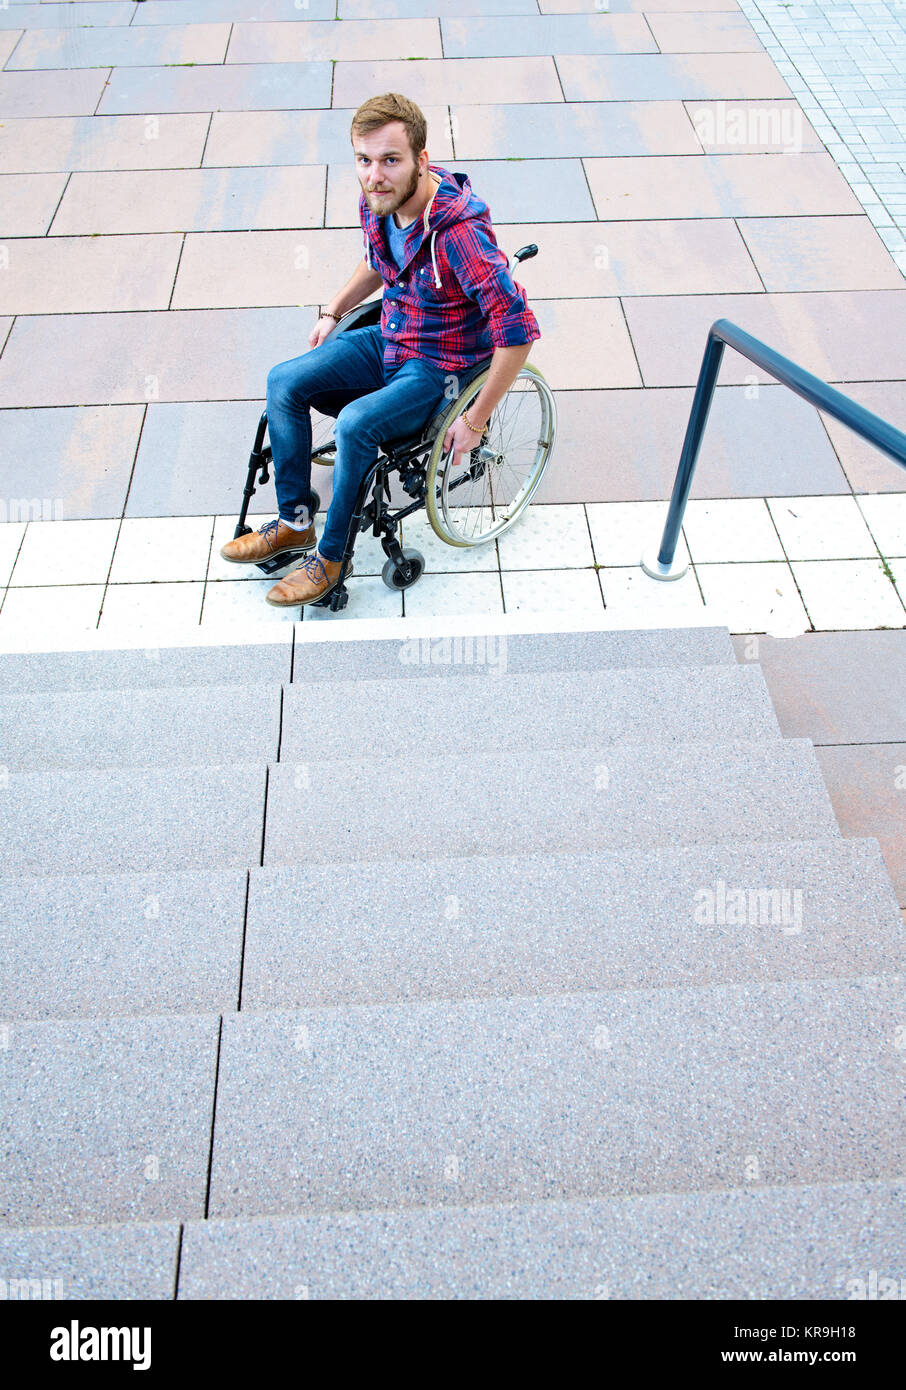 Under Stairs Stock Photos Amp Under Stairs Stock Images Alamy